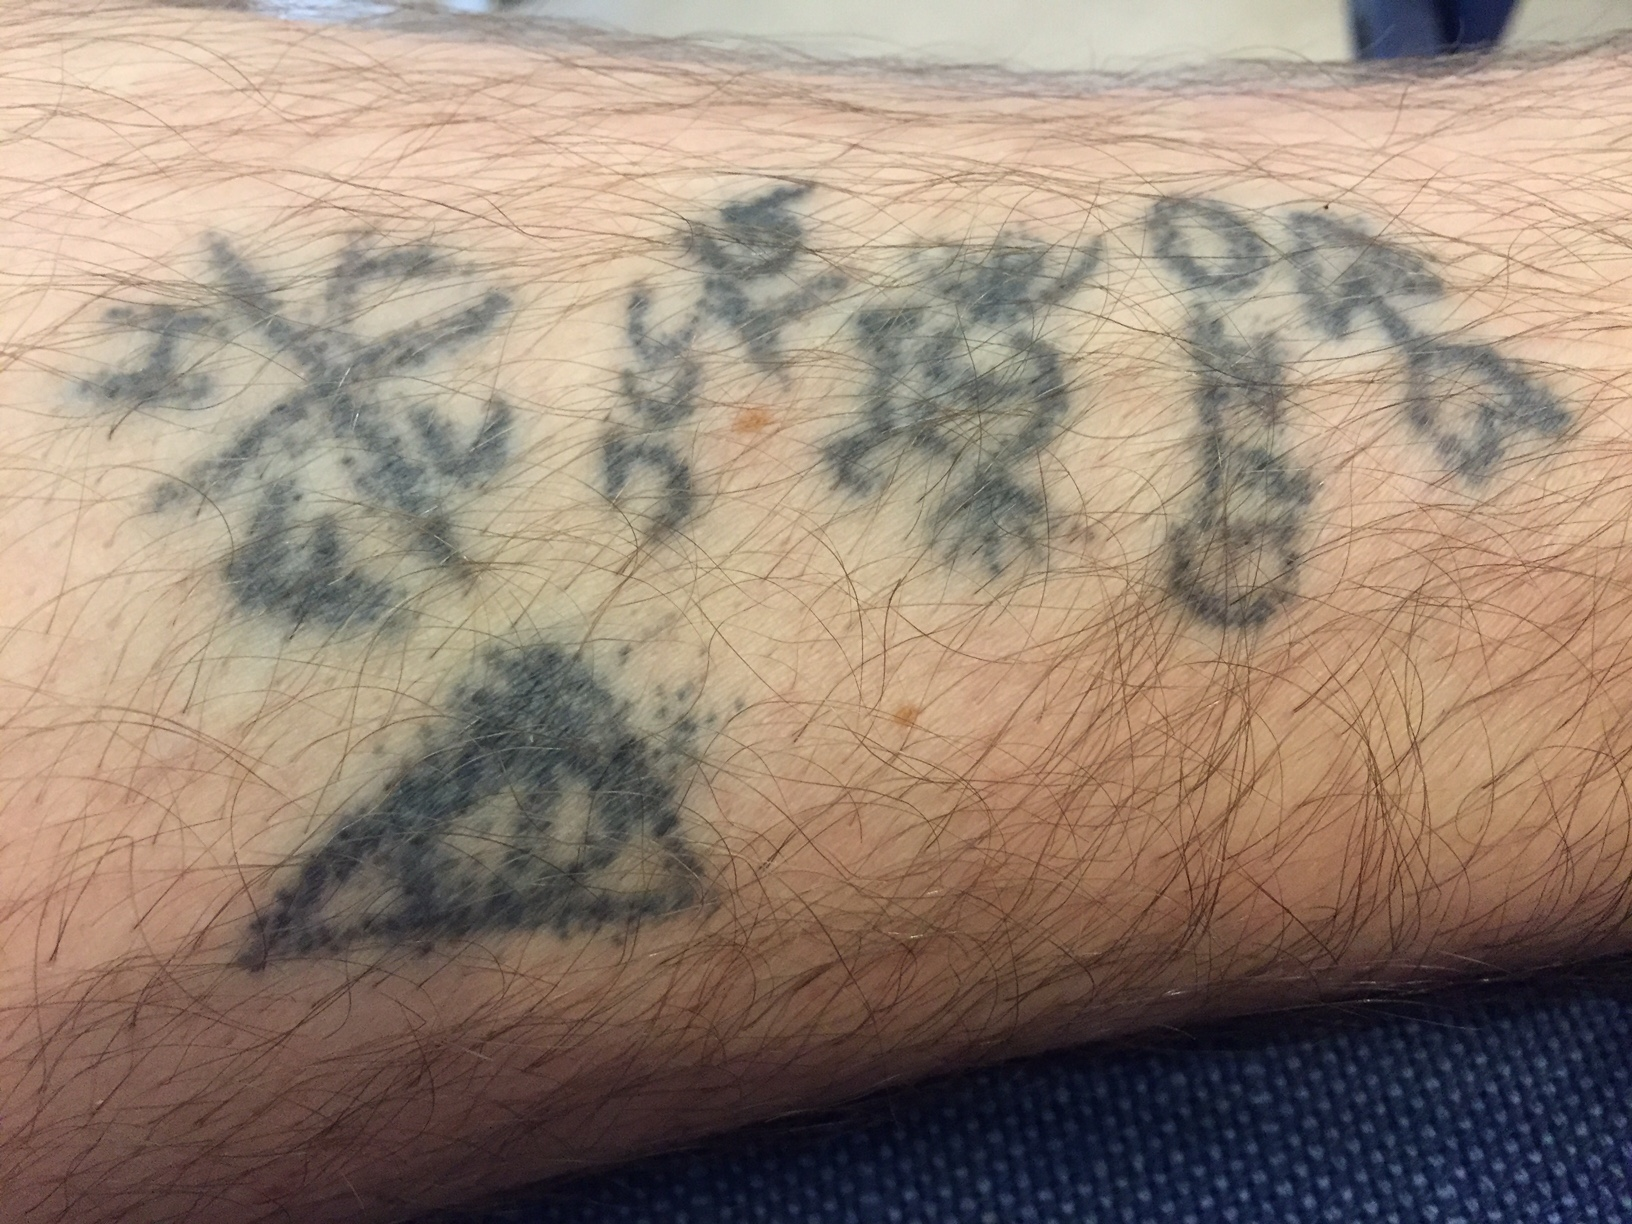 My Charlie Kelly chicken scratch stick'n'poke tattoos, complete with a poorly drawn Deathly Hallows.